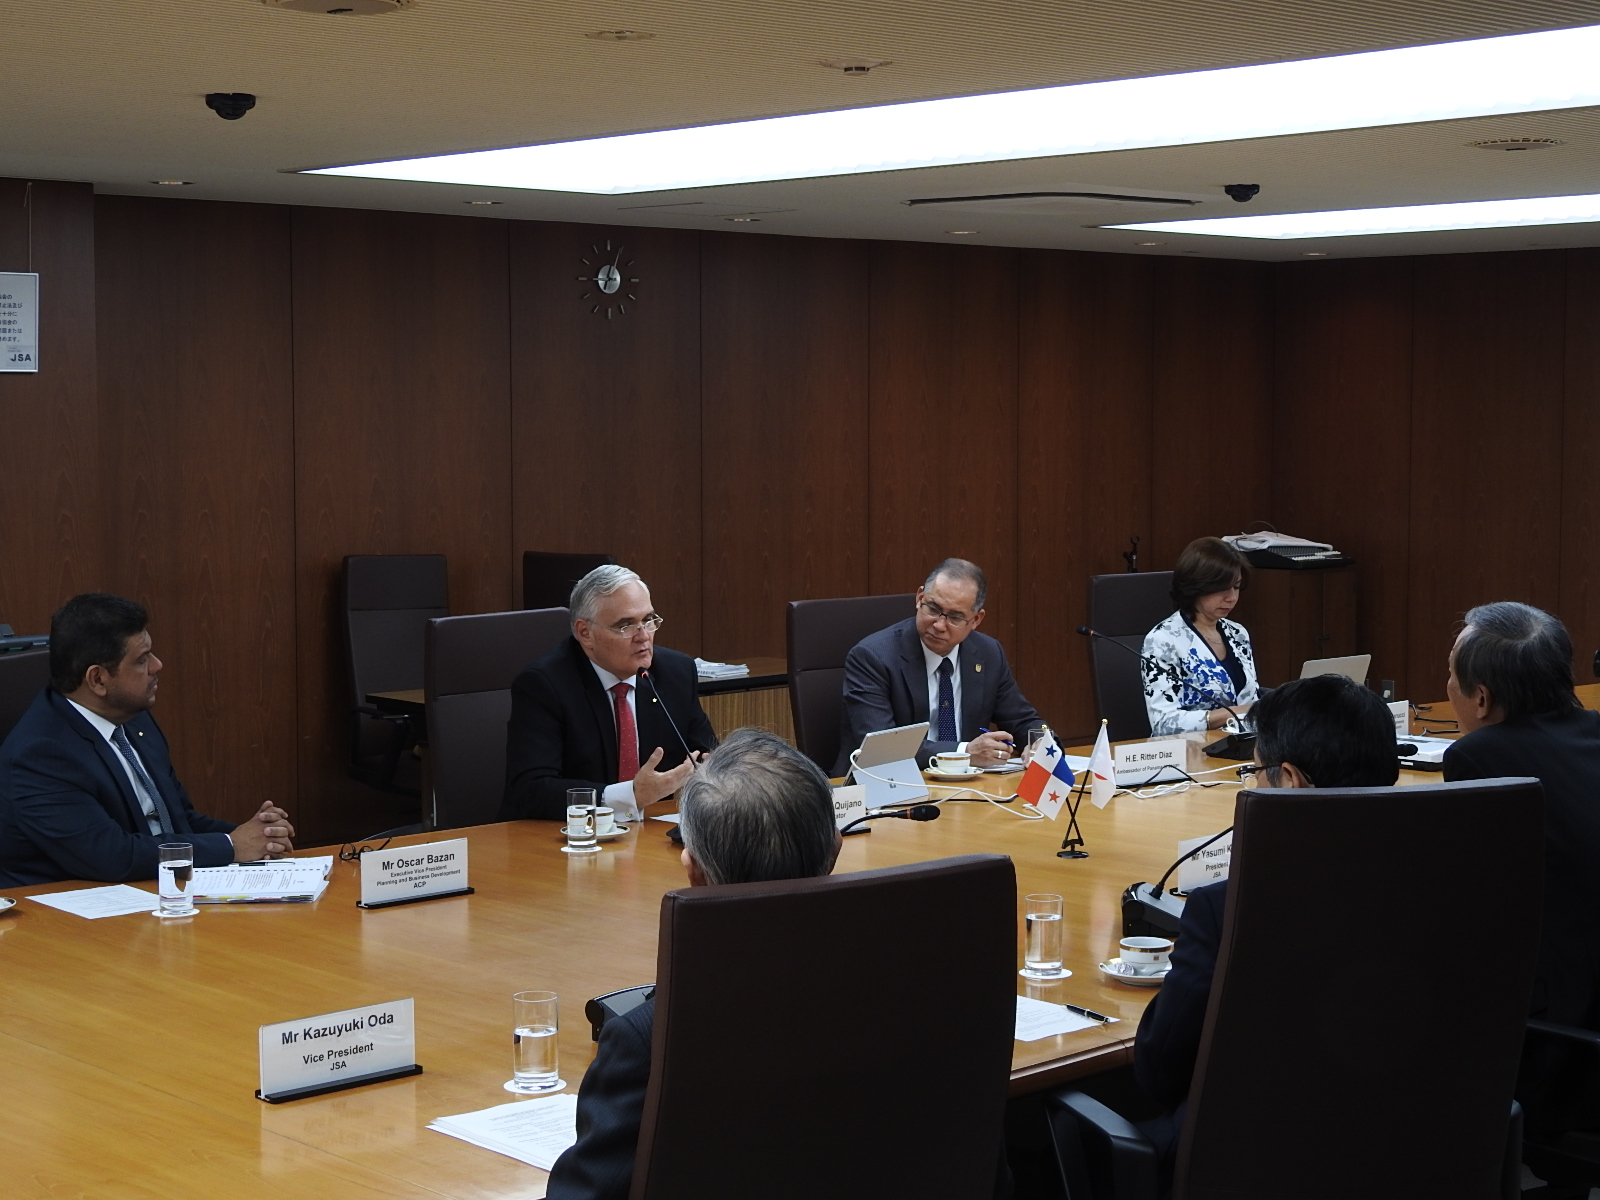 AMeeting with the Japan Shipowners Association (JSA)